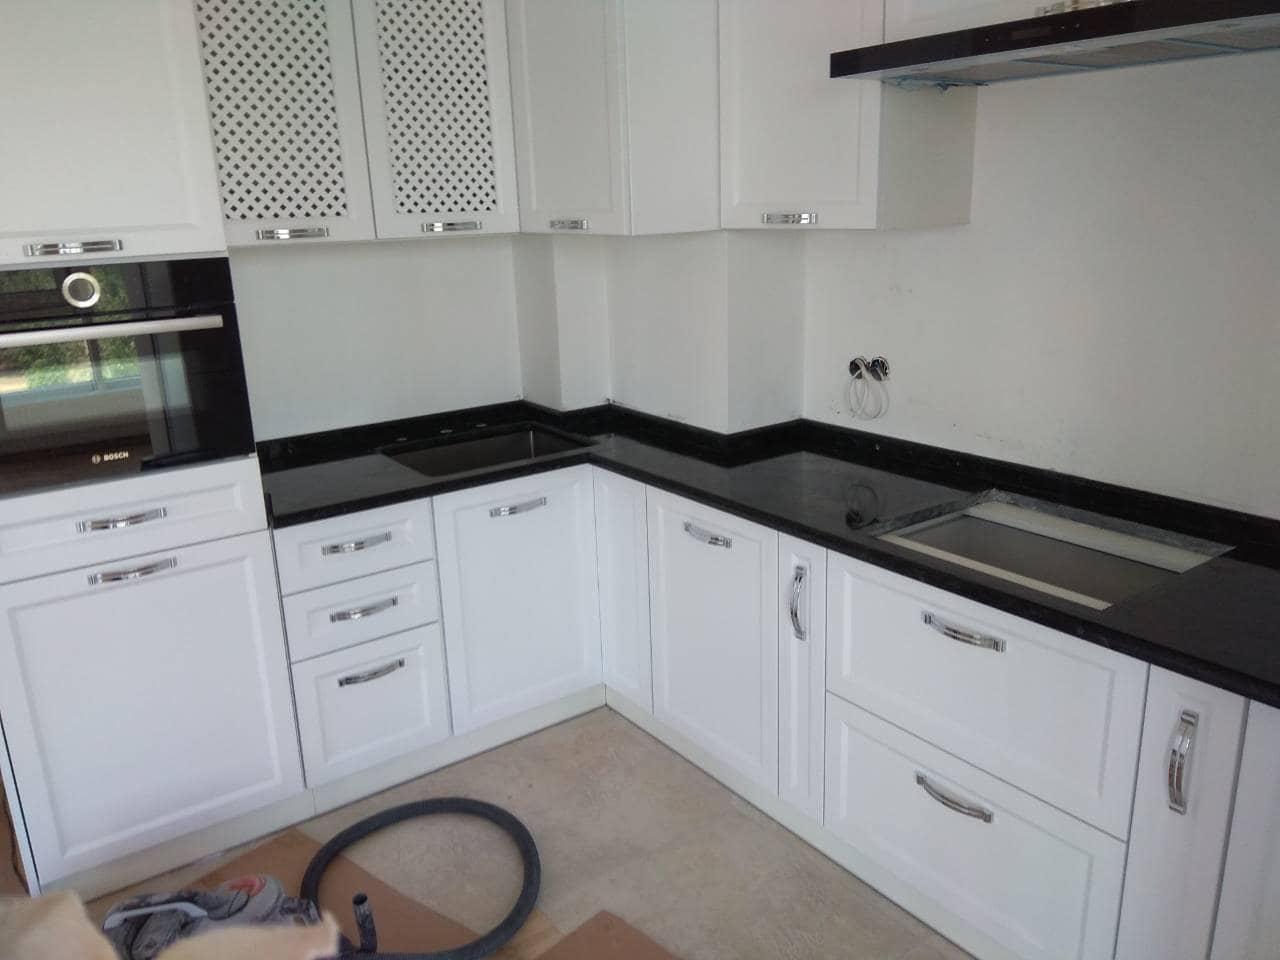 A Guide To Using Granite In Your Kitchen. Classic design with black countertop